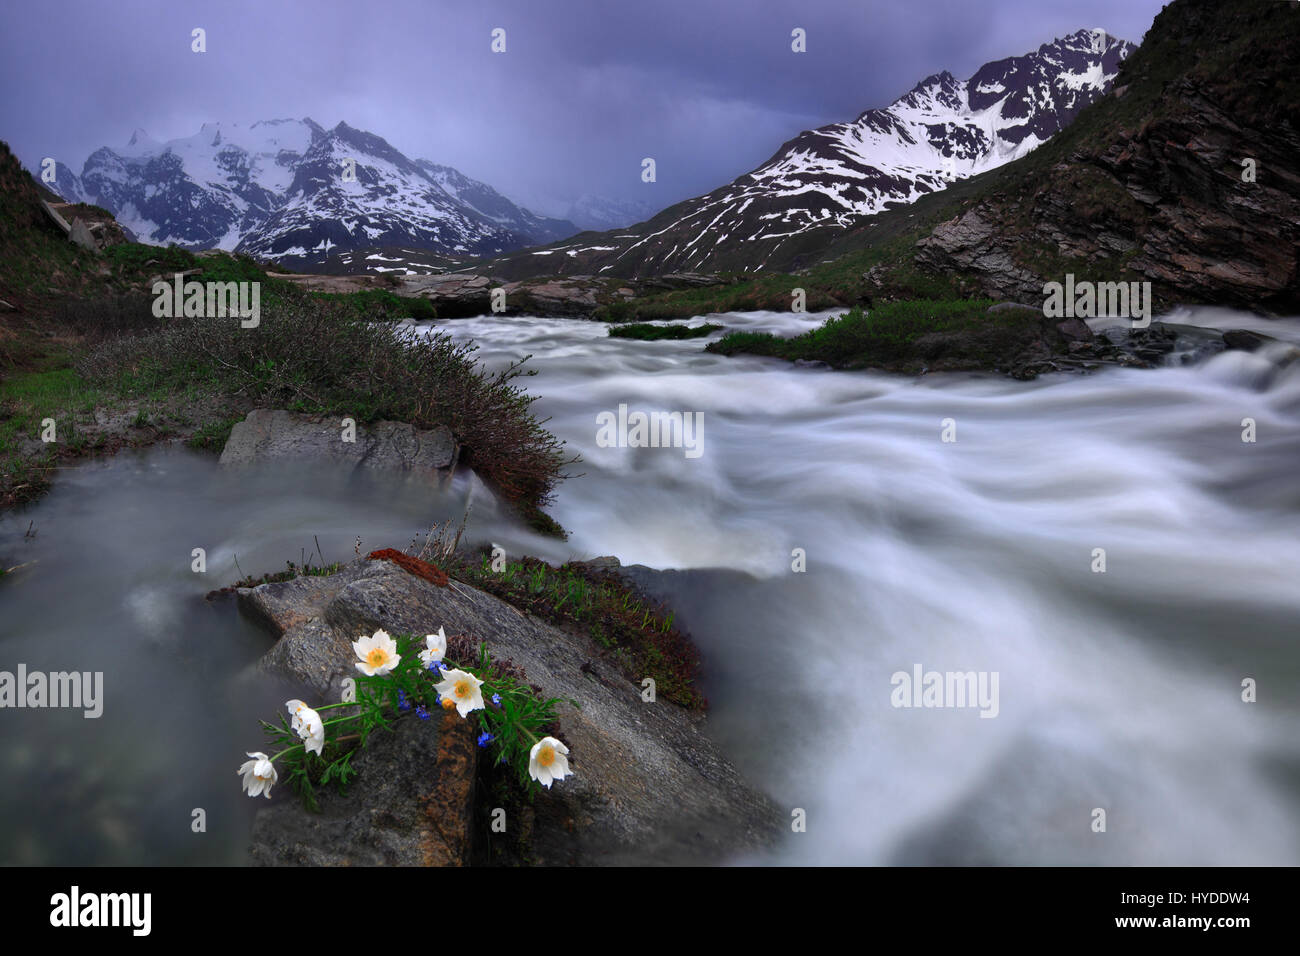 The roaring rapids of the river Arc in the upper part of the Val Cenis in the french Western Alps, Haute Maurienne. - Stock Image